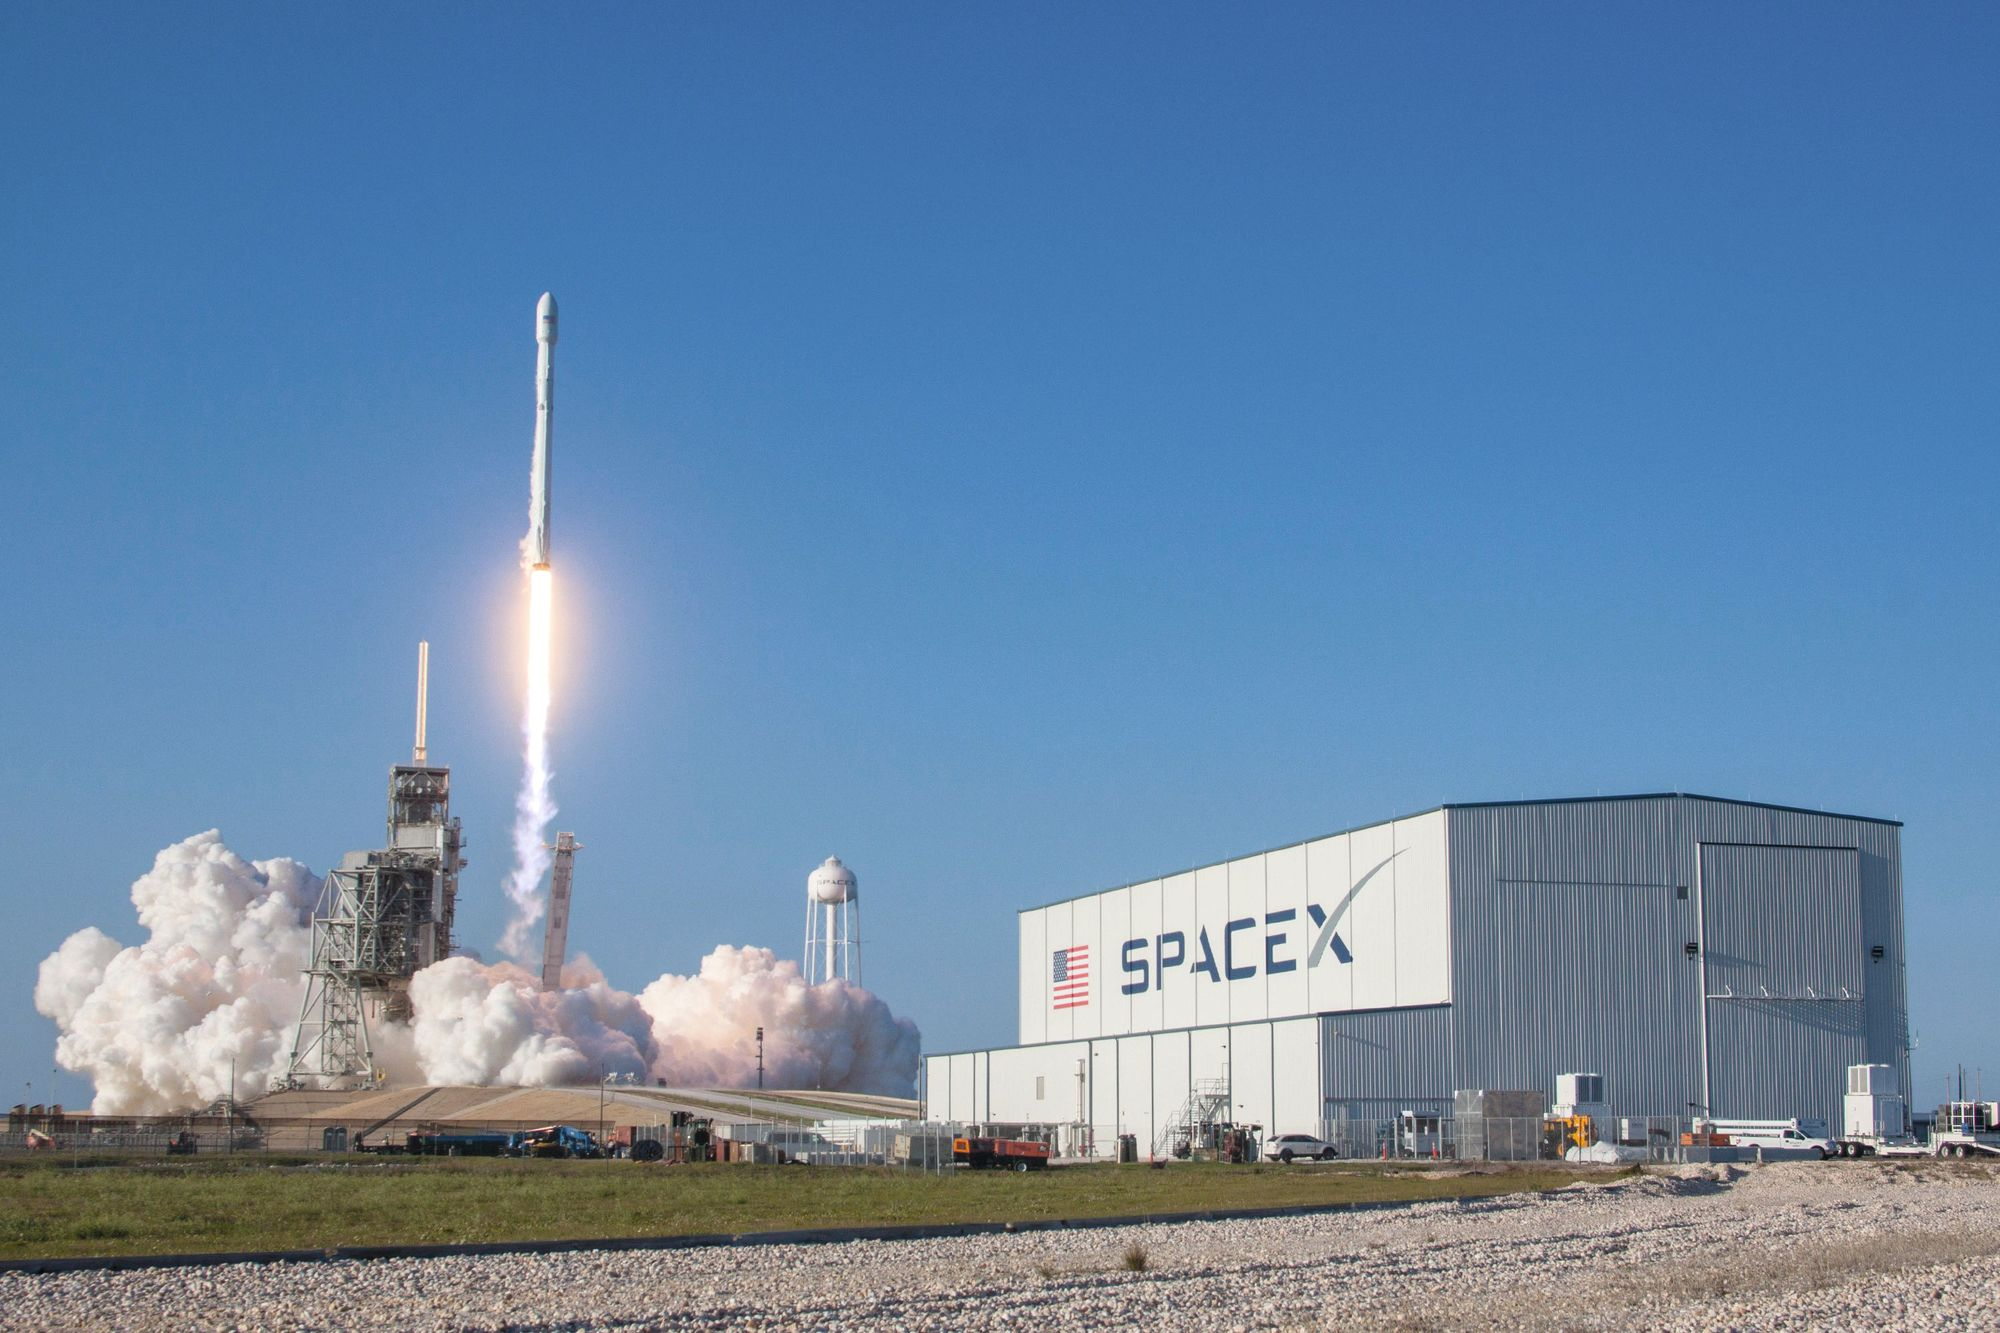 Space X, un concurrent inattendu